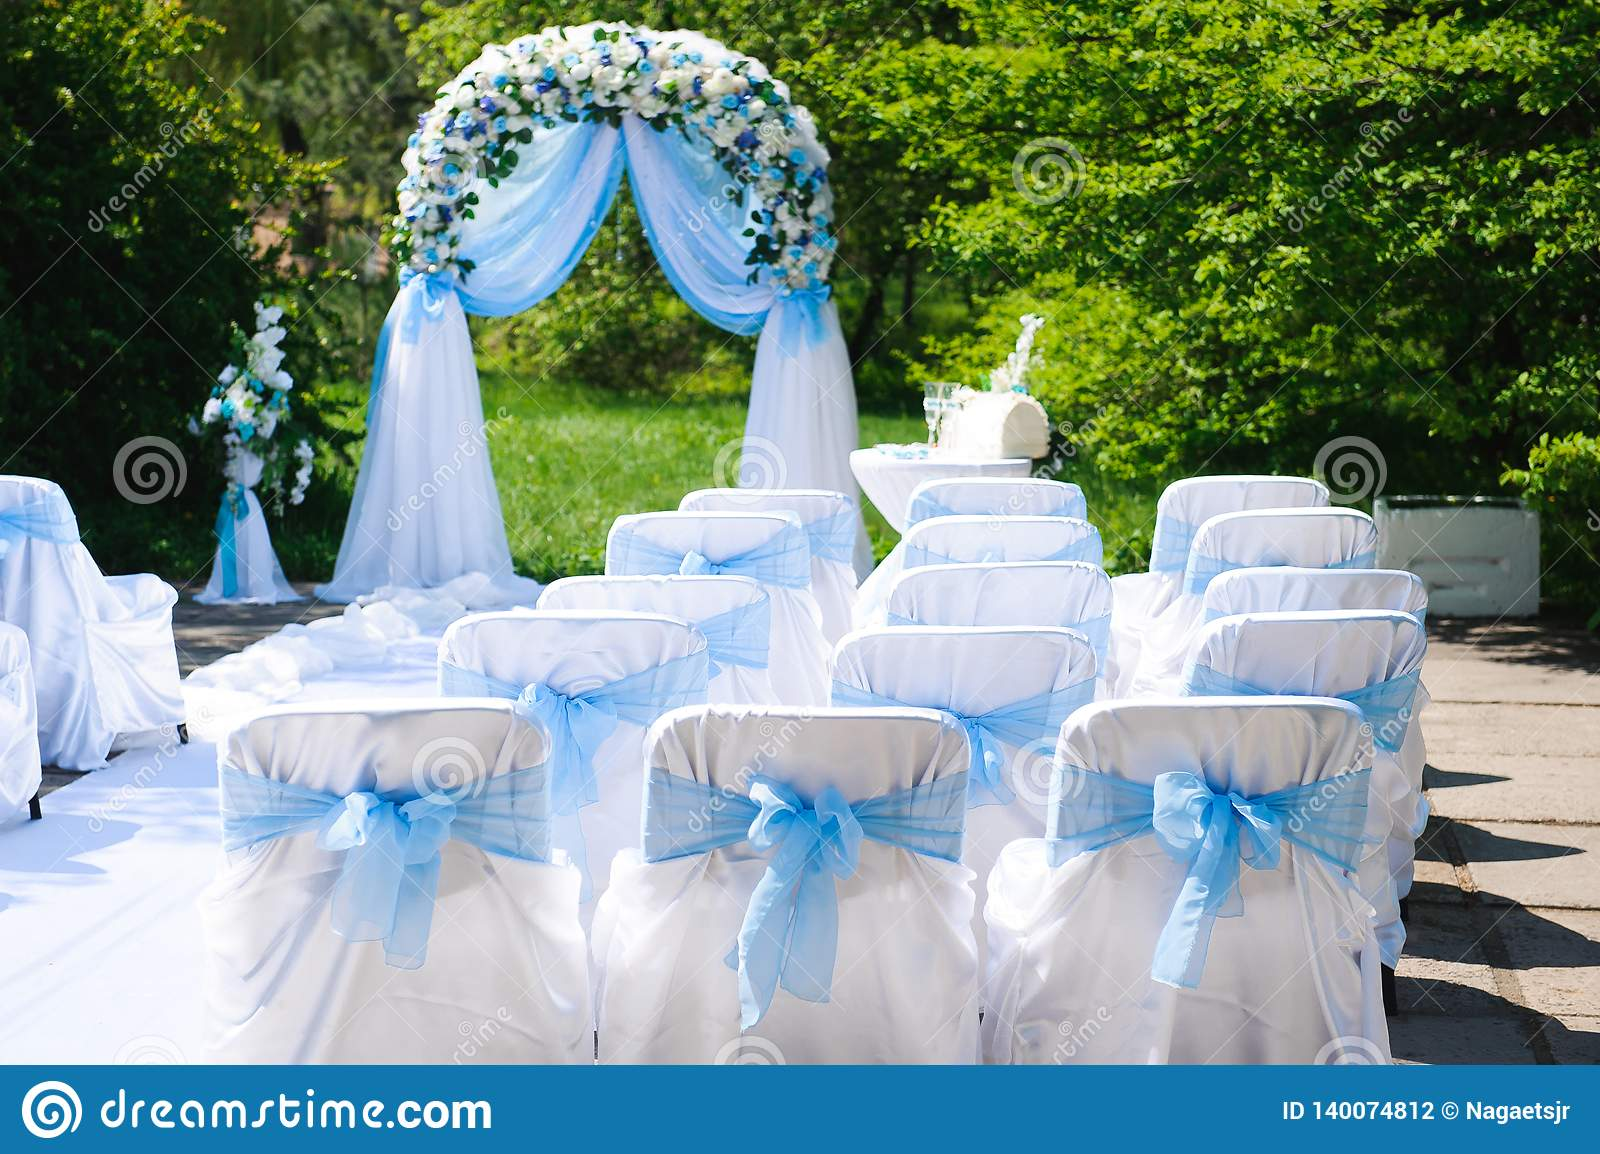 Image of: Wedding Ceremony Outdoors Wedding Ceremony Decoration Beautiful Wedding Decor Flowers Stock Photo Image Of Florida Decorations 140074812